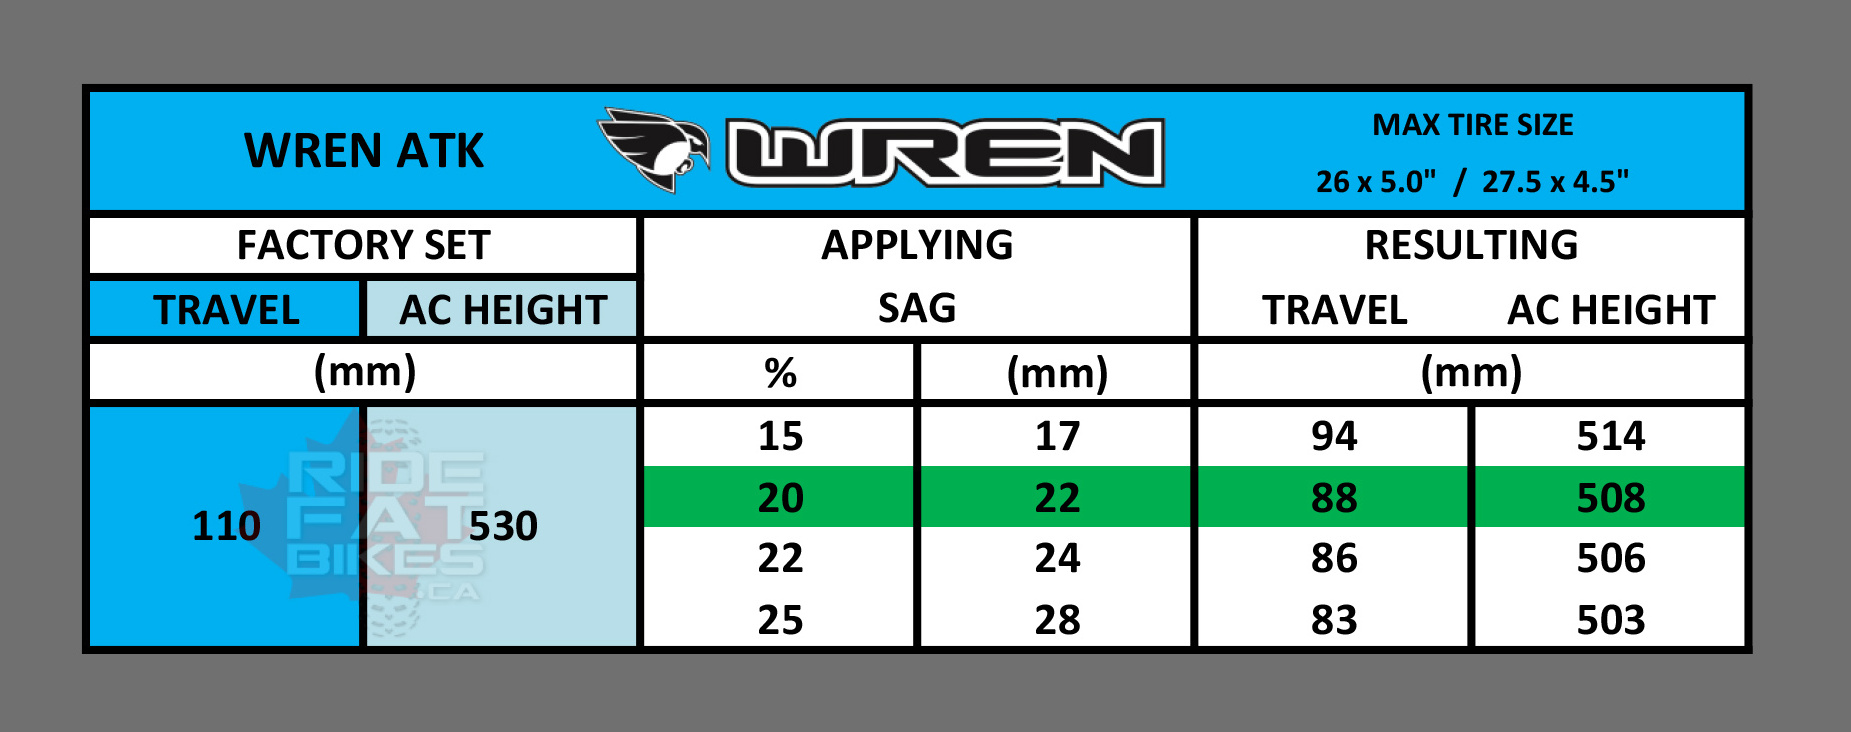 WREN ATK 110 TRAVEL and AC HEIGHT SAG settings